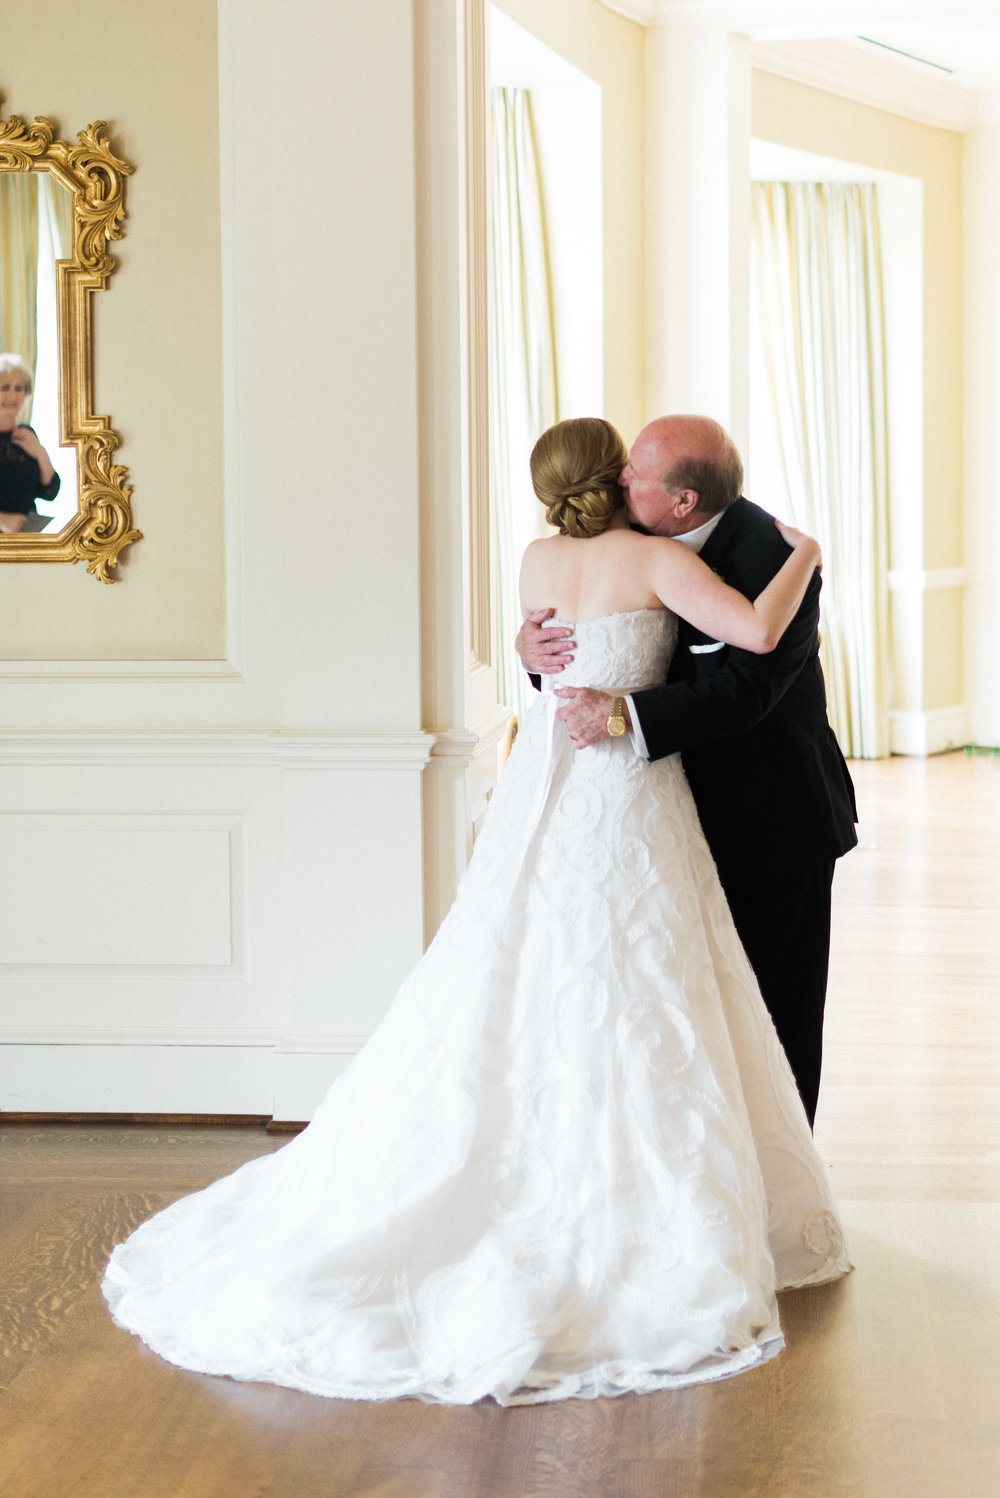 Fine-Art-Film-Houston-Wedding-Photographer-Best-Top-Luxury-Texas-Austin-Dallas-Destination-Dana-Fernandez-Photography-River-Oaks-Country-Club-South-Main-Baptist-Ceremony-Reception-Wedding-7.jpg